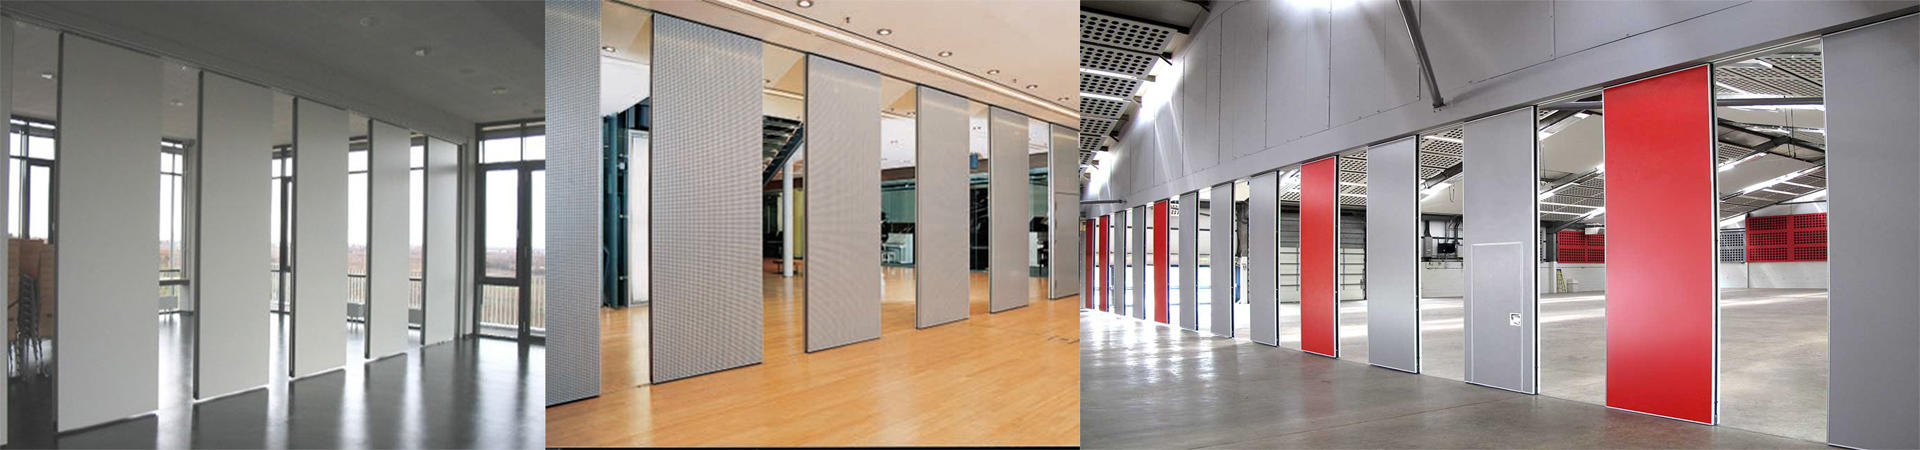 EBUNGE-Folding Door Sliding Aluminium Track Acoustic Room Divider Hotel Movable Partition Wall